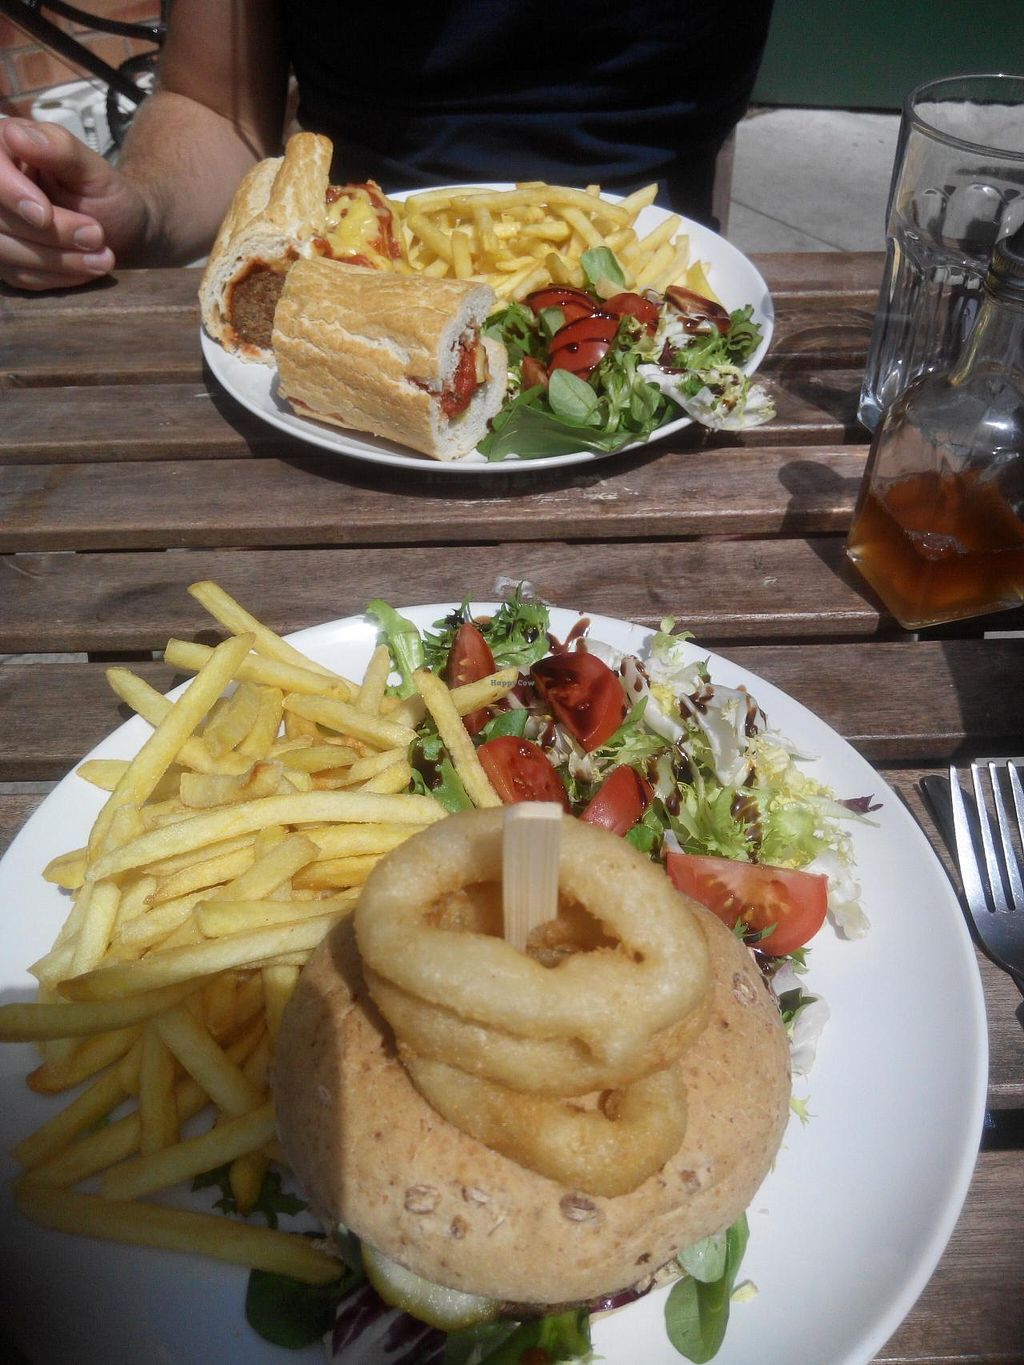 """Photo of Teatime Collective  by <a href=""""/members/profile/RJS"""">RJS</a> <br/>Meatball sub and stuffed burger <br/> July 10, 2015  - <a href='/contact/abuse/image/41717/108764'>Report</a>"""